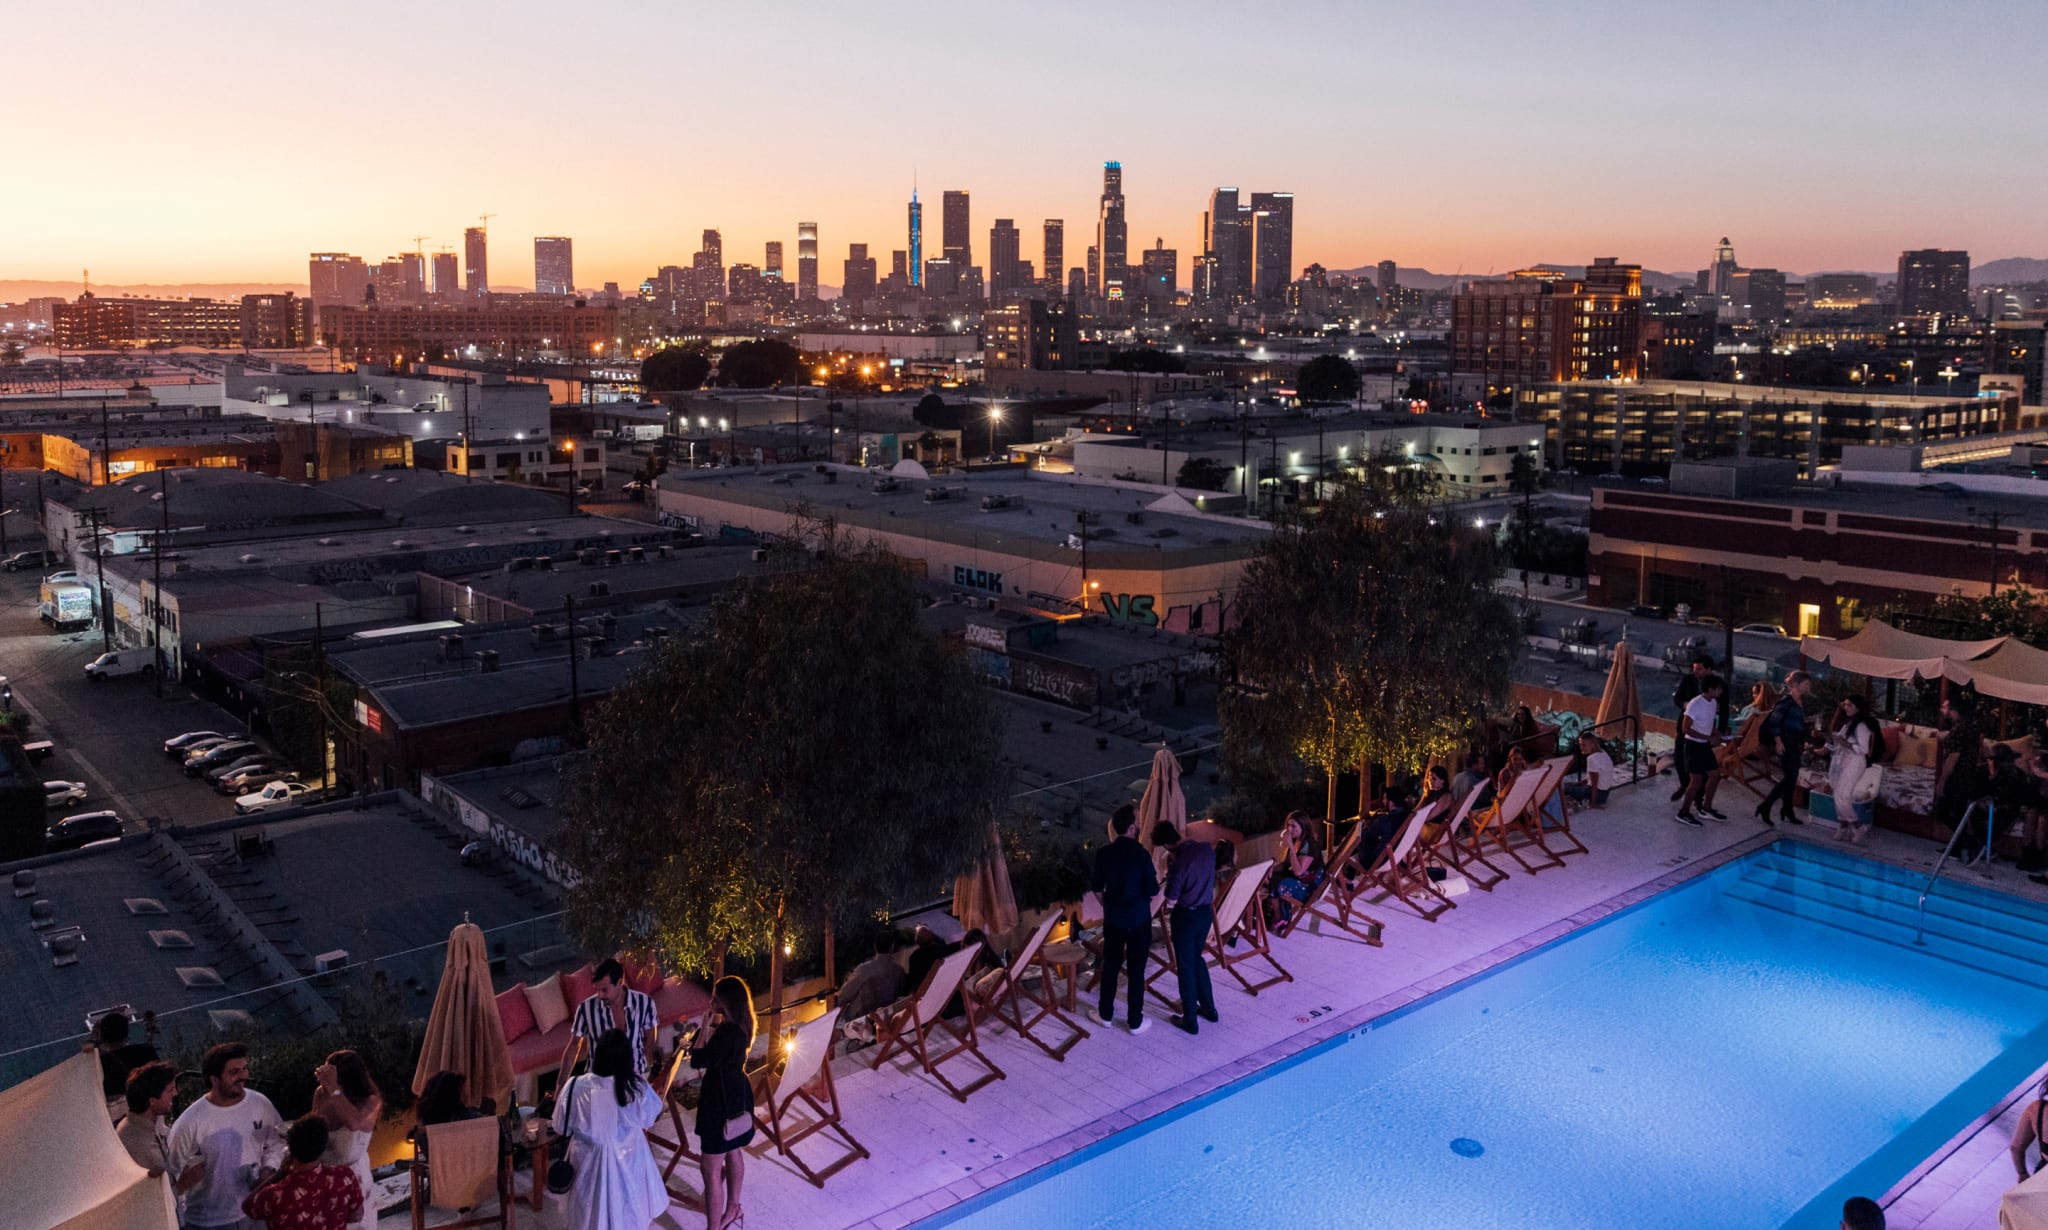 A rooftop pool surrounded by deckchairs and loungers